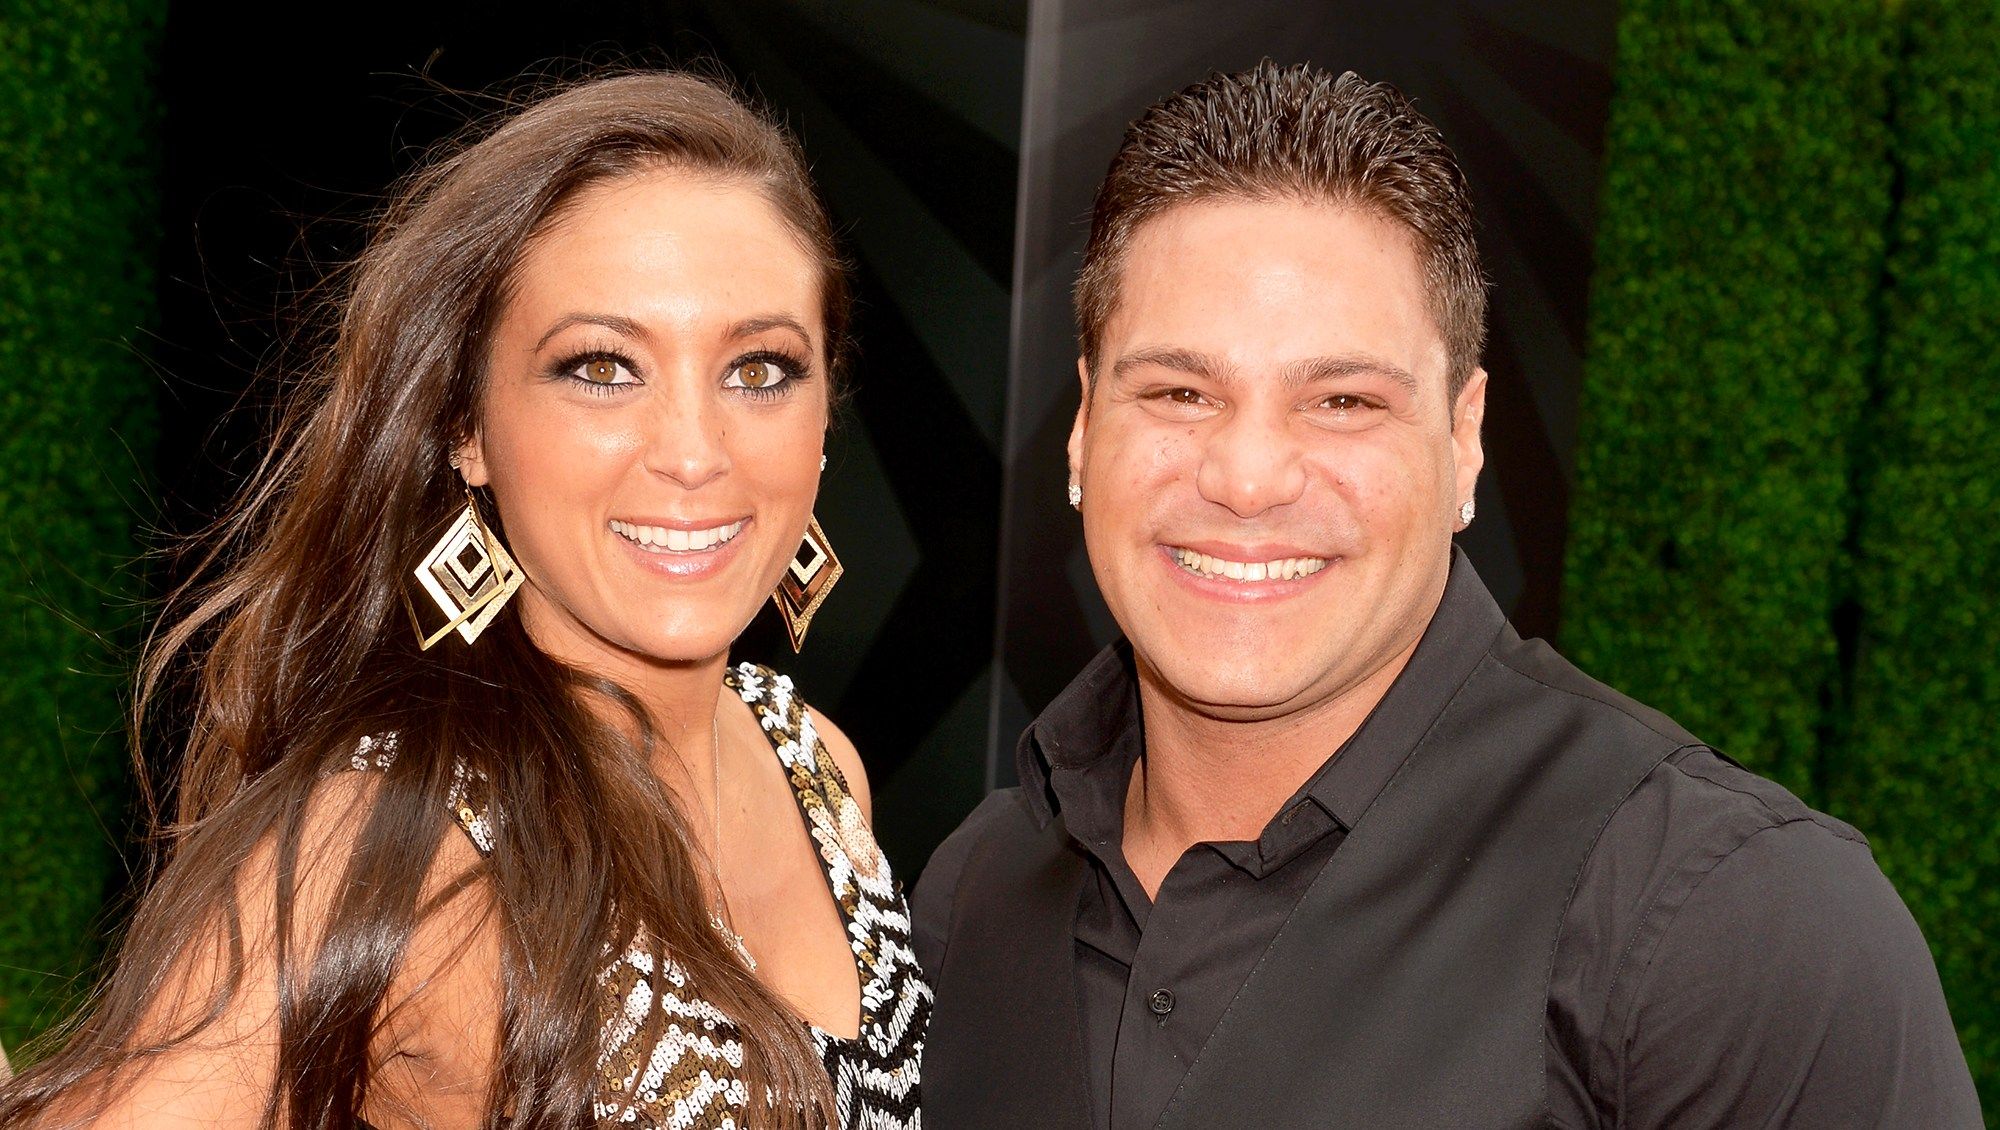 Sammi Sweetheart Giancola and Ronnie Ortiz Magro attend the 2013 MTV Movie Awards at Sony Pictures Studios in Culver City, California.